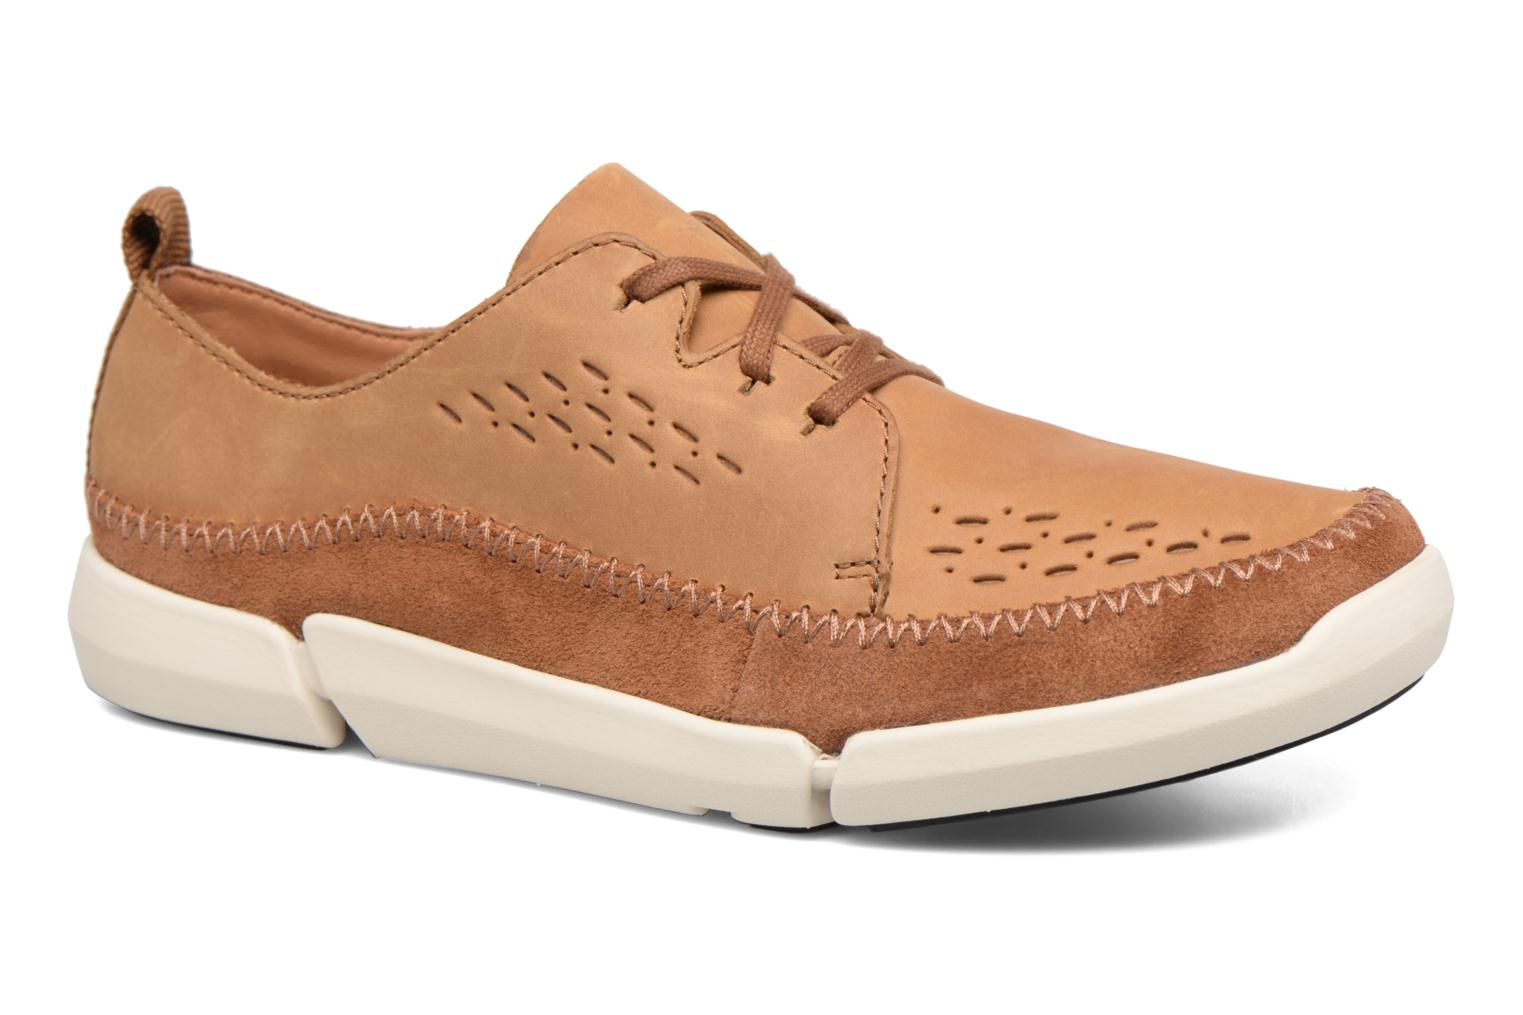 Baskets Clarks Trifri Lace Marron vue détail/paire